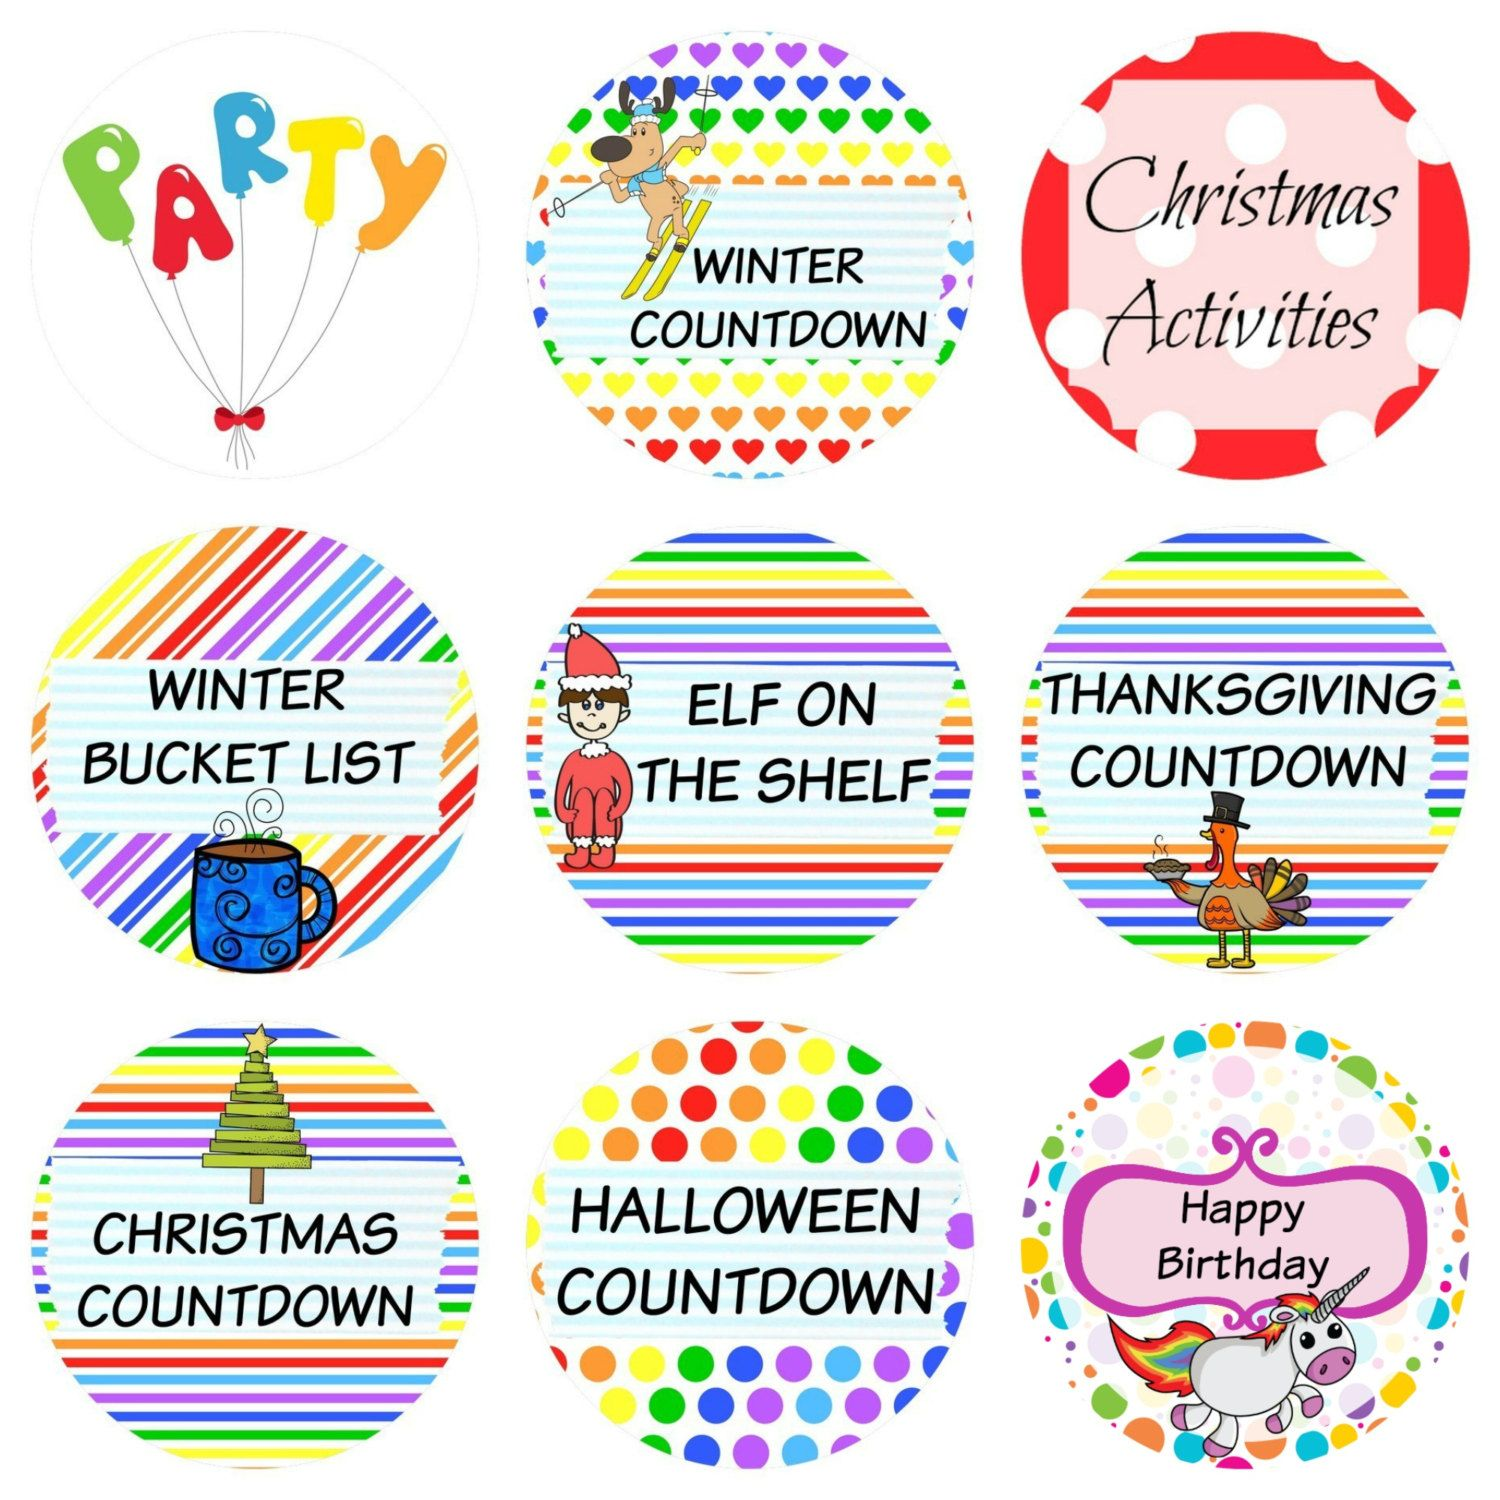 Halloween Thanksgiving Christmas Countdown.108 Planner Stickers Countdowns For Christmas Winter